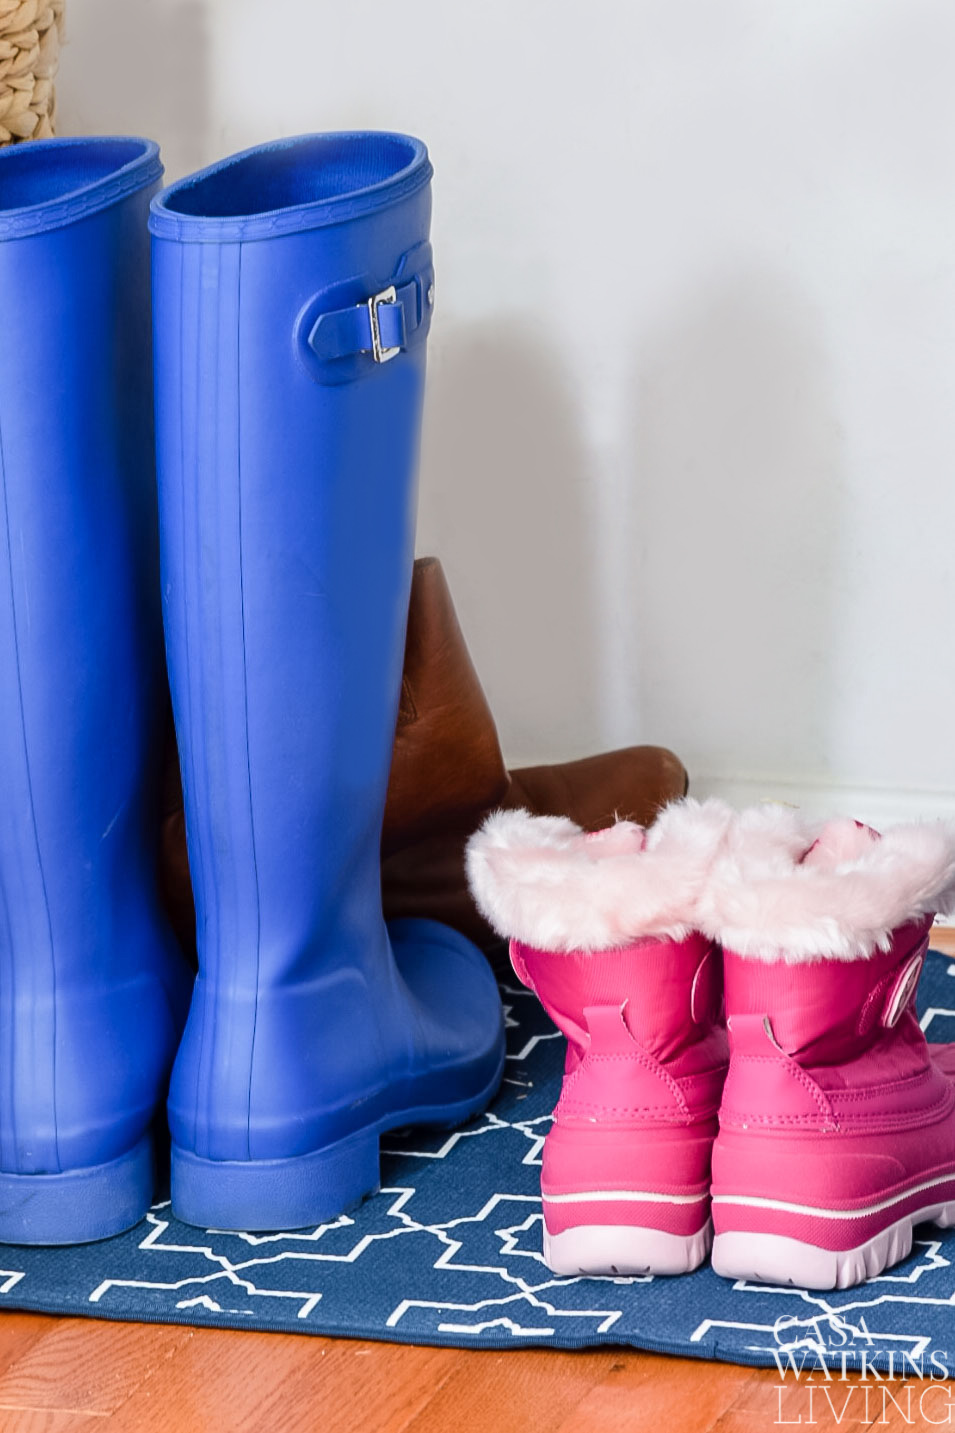 Use dish drying mat to dry wet boots